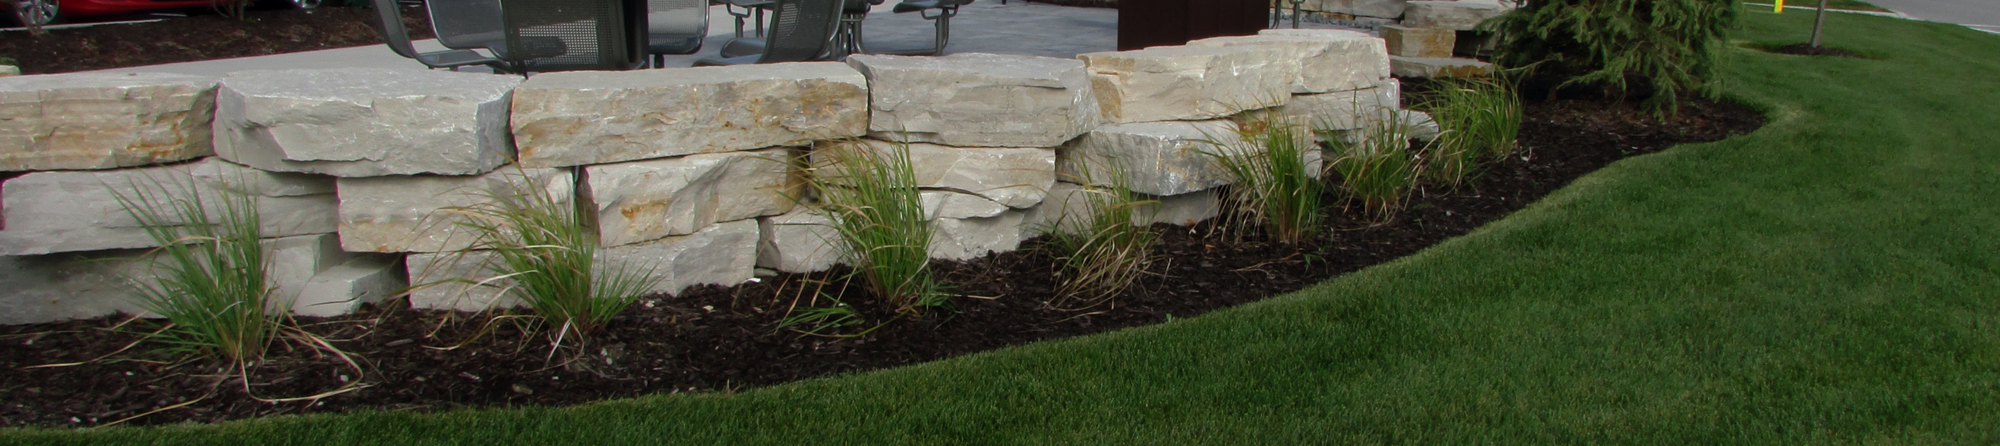 commercial retaining wall landscaped